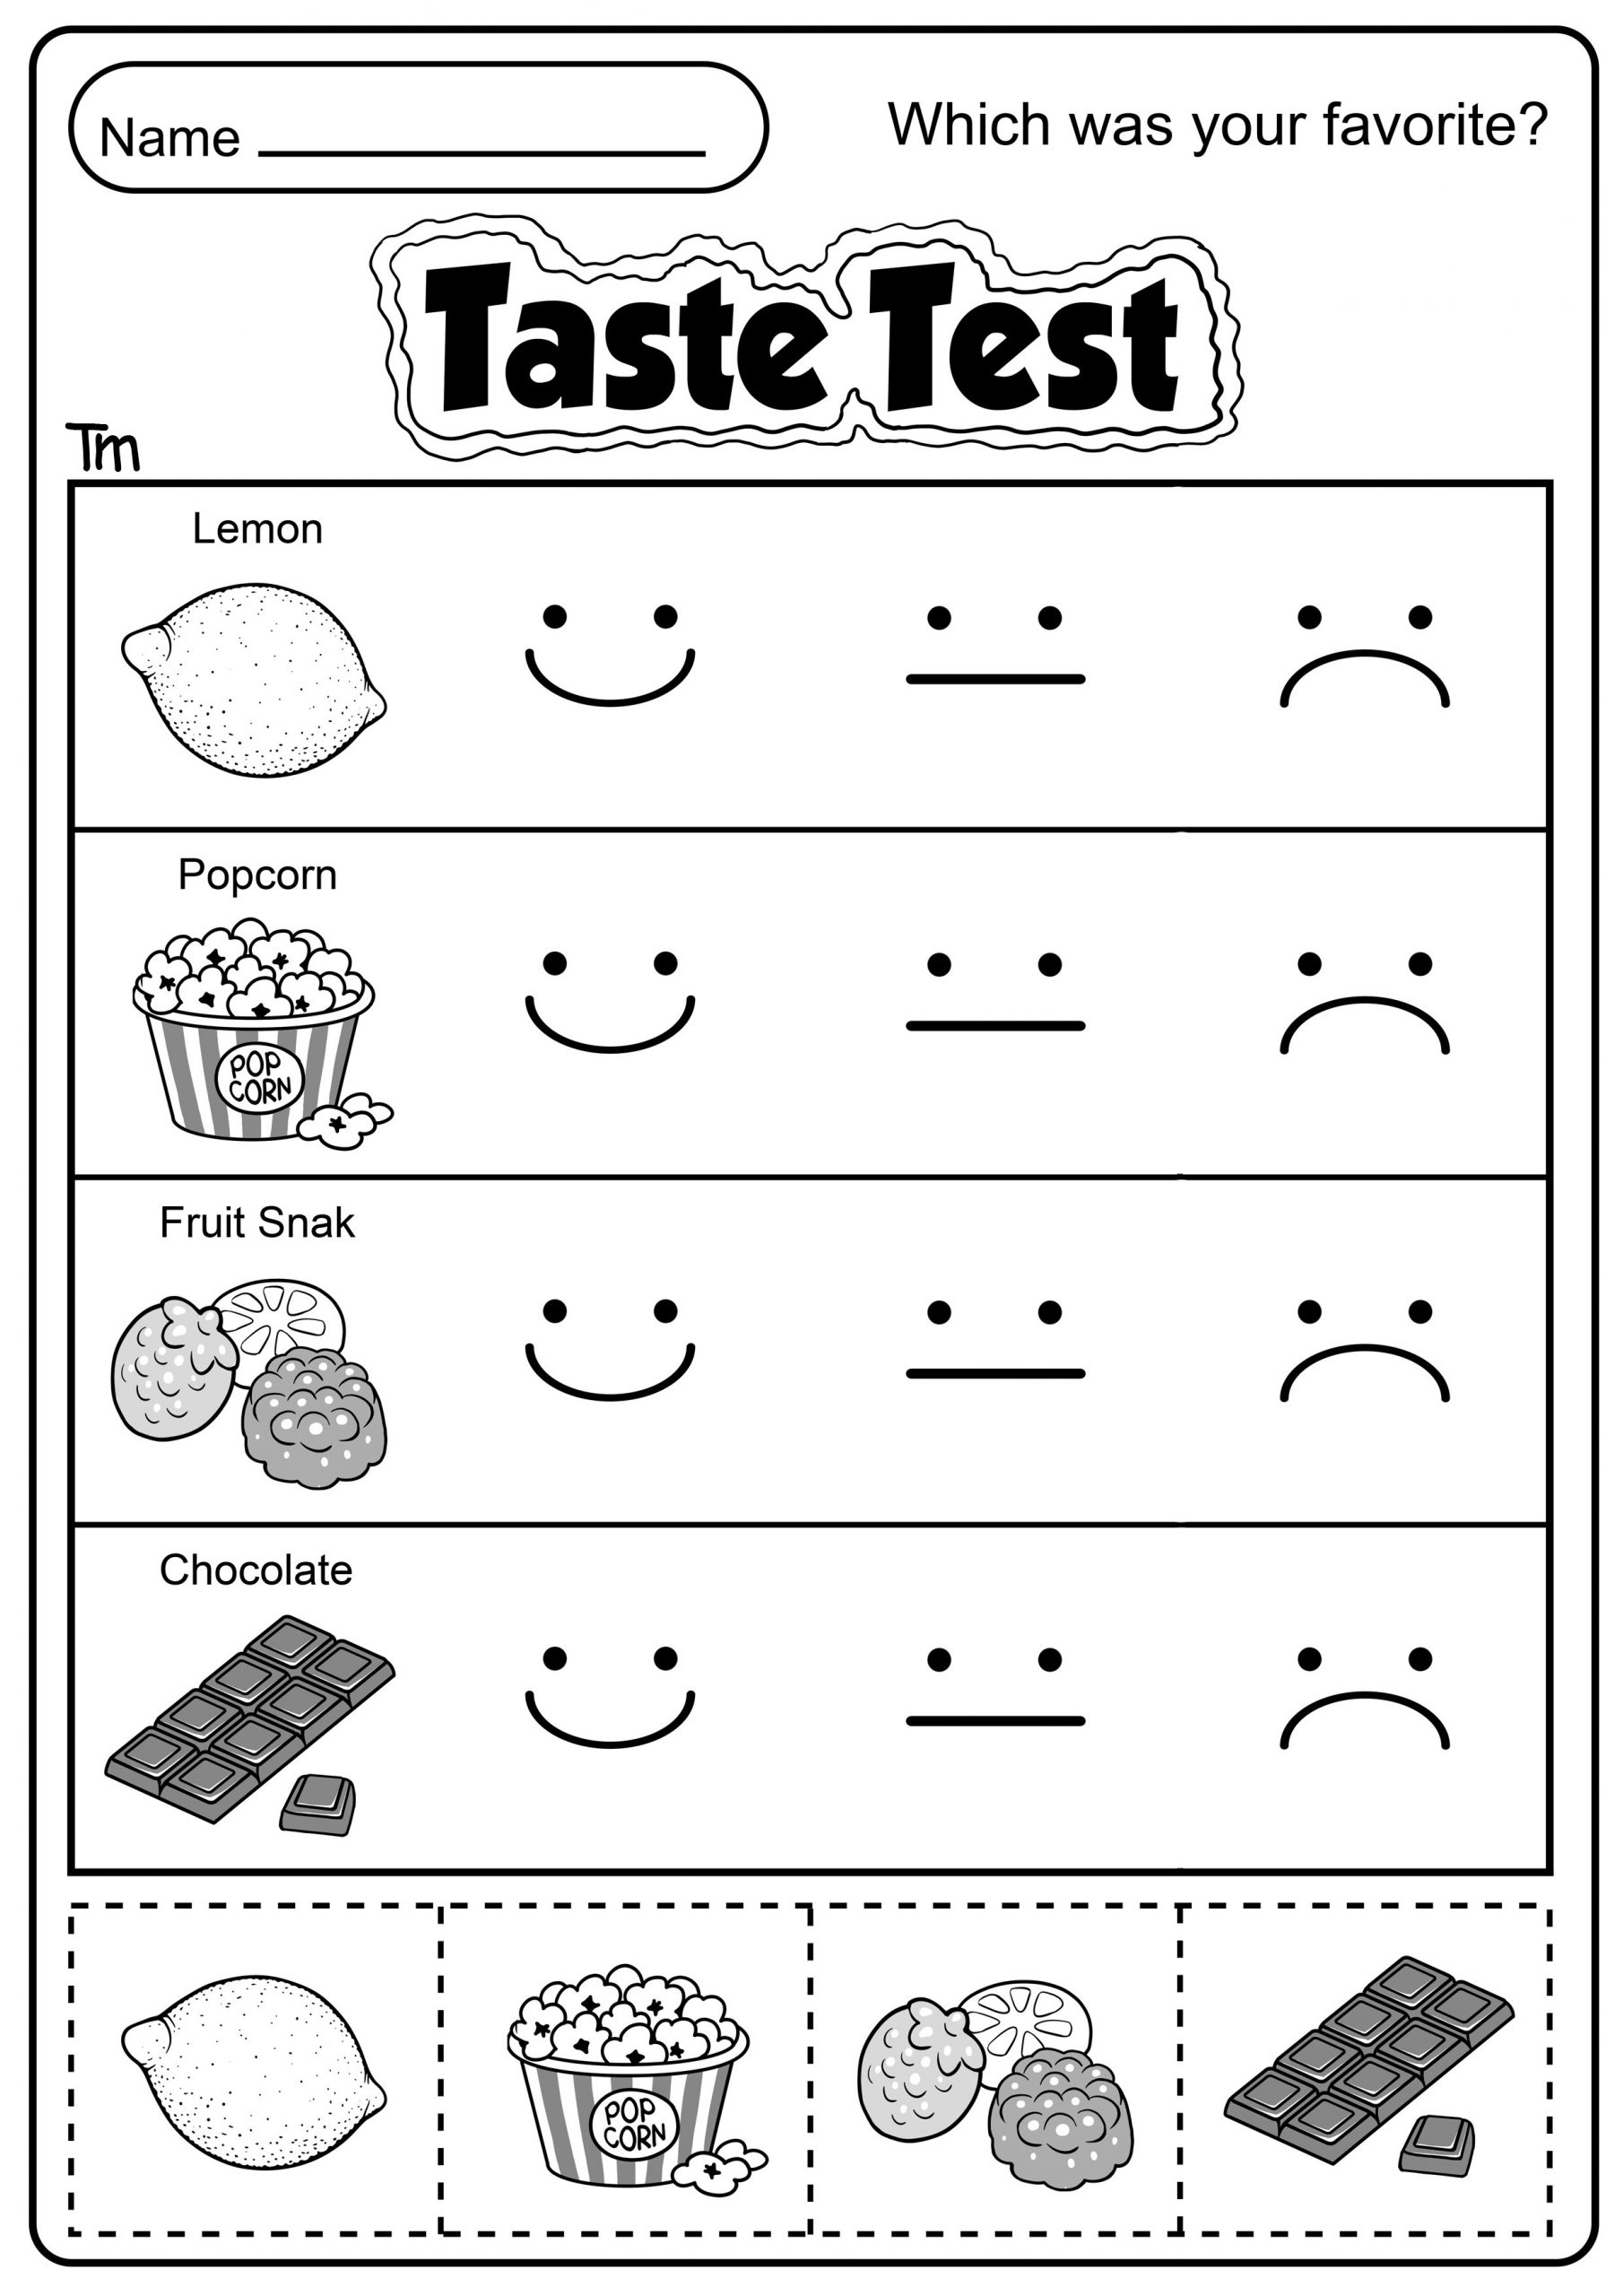 5 Senses Printable Worksheets the Five Senses Taste Test Teachersmag